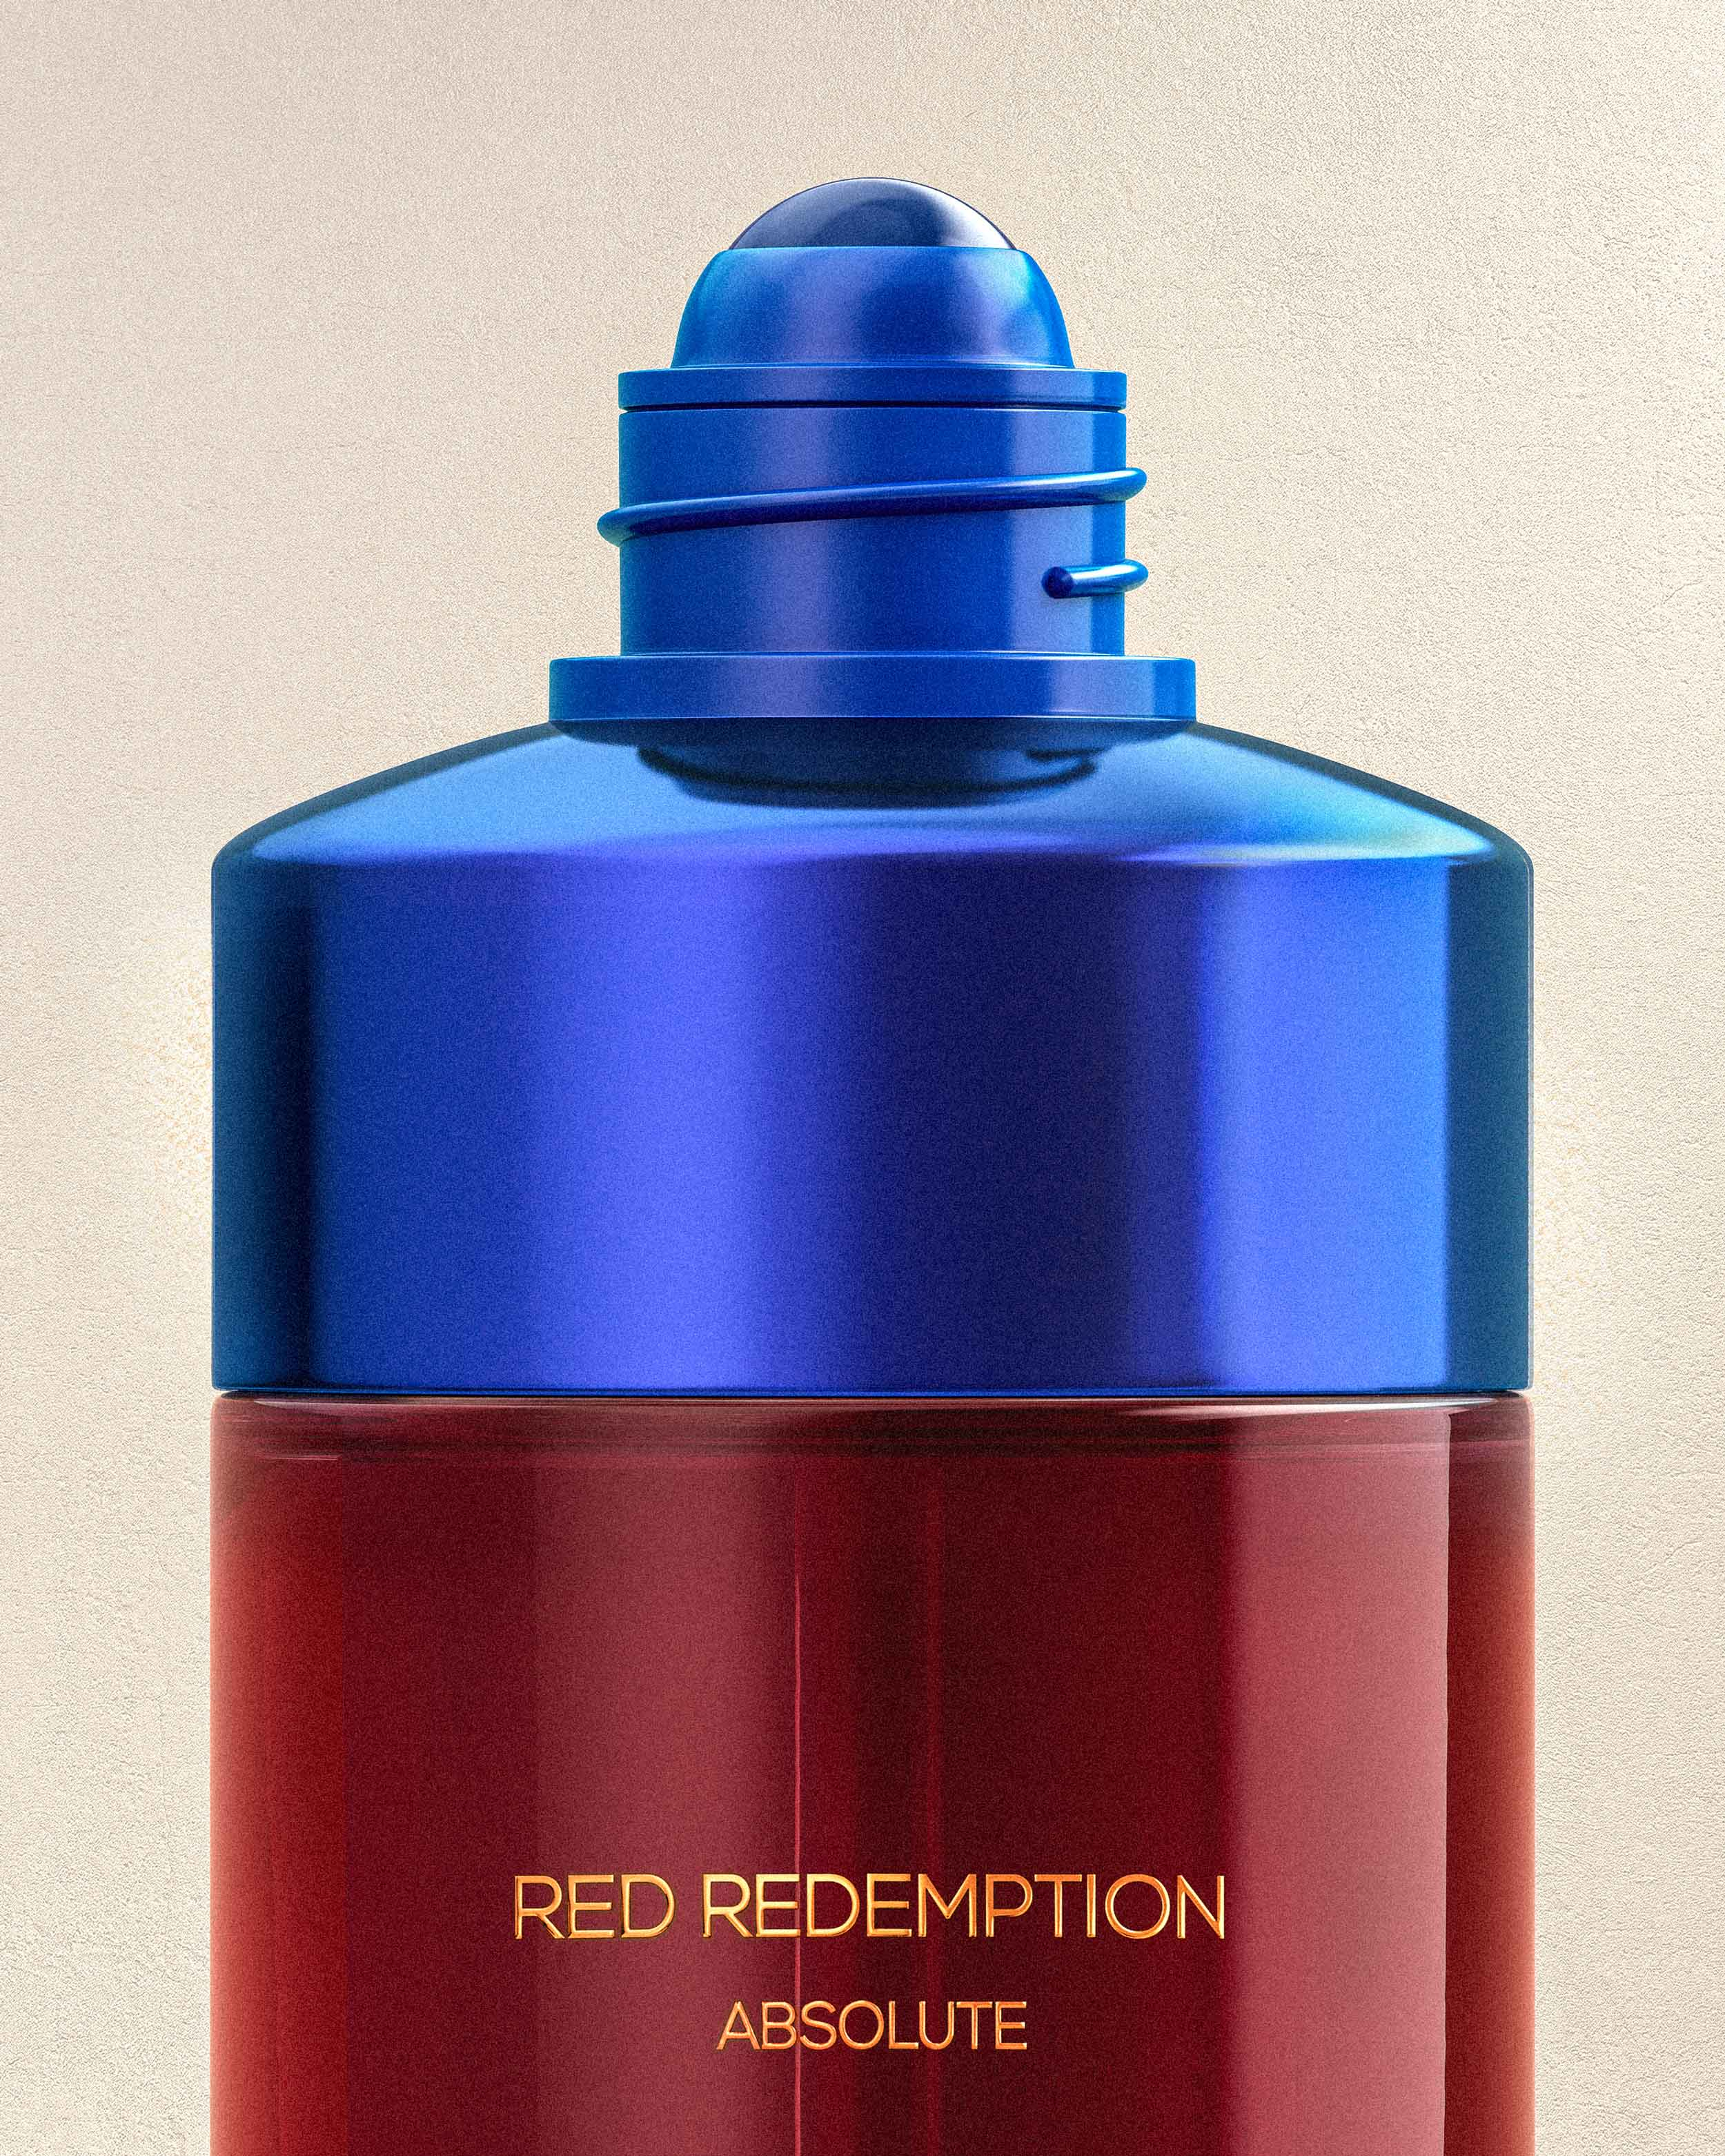 OJAR Absolute Red Redemption Perfume Roll-on